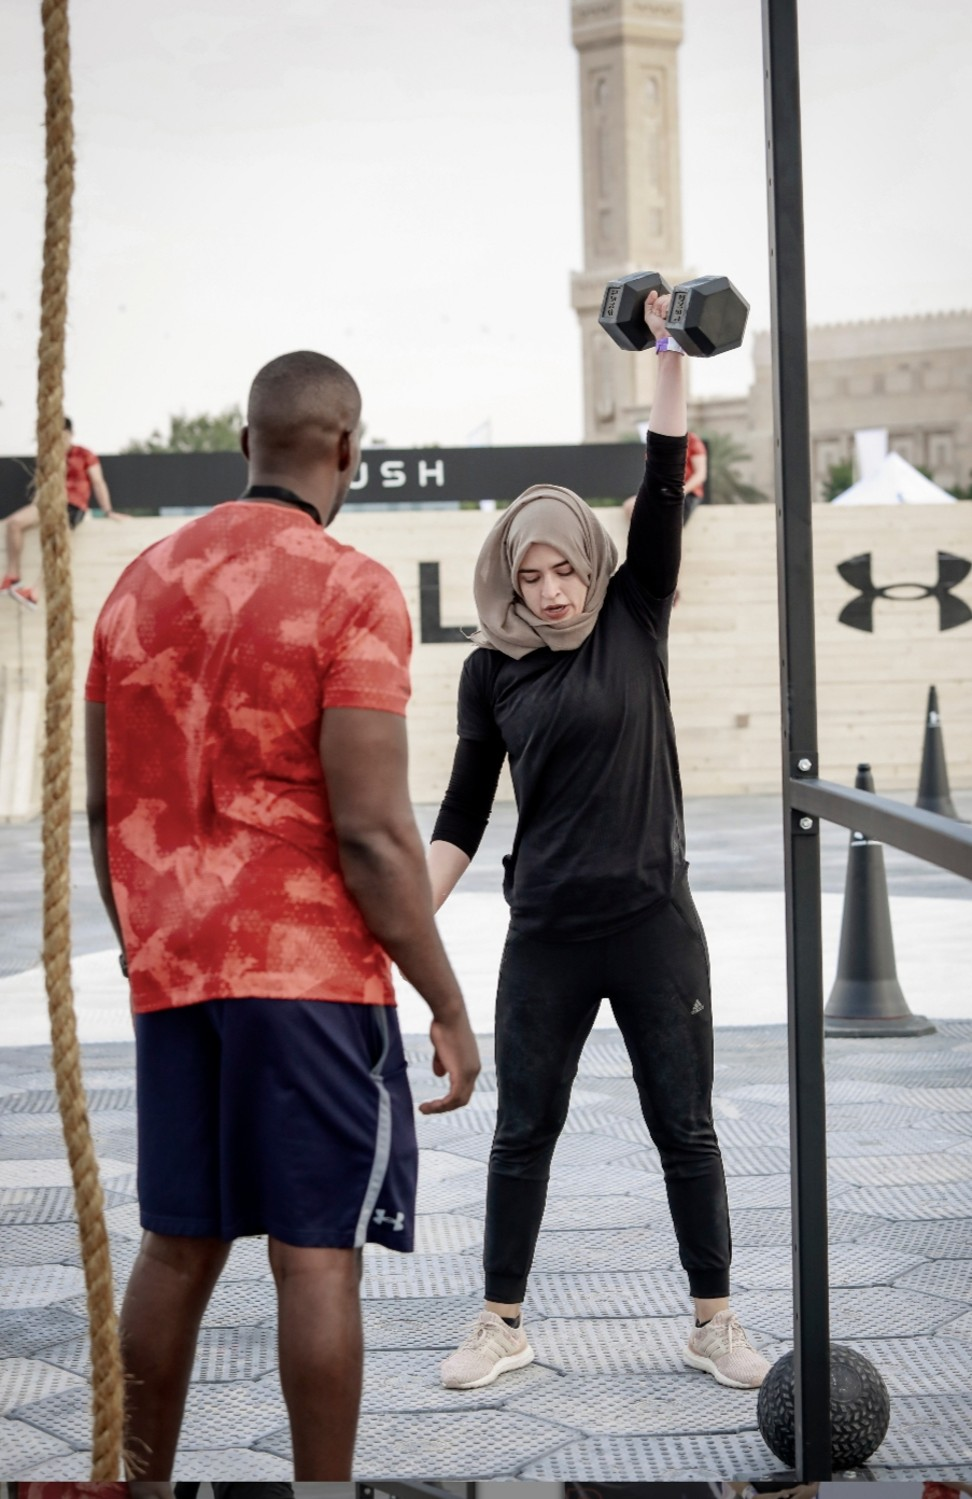 Kaddour said she hopes to inspire other women to take up CrossFit by competing at the games this year. Photo: Handout